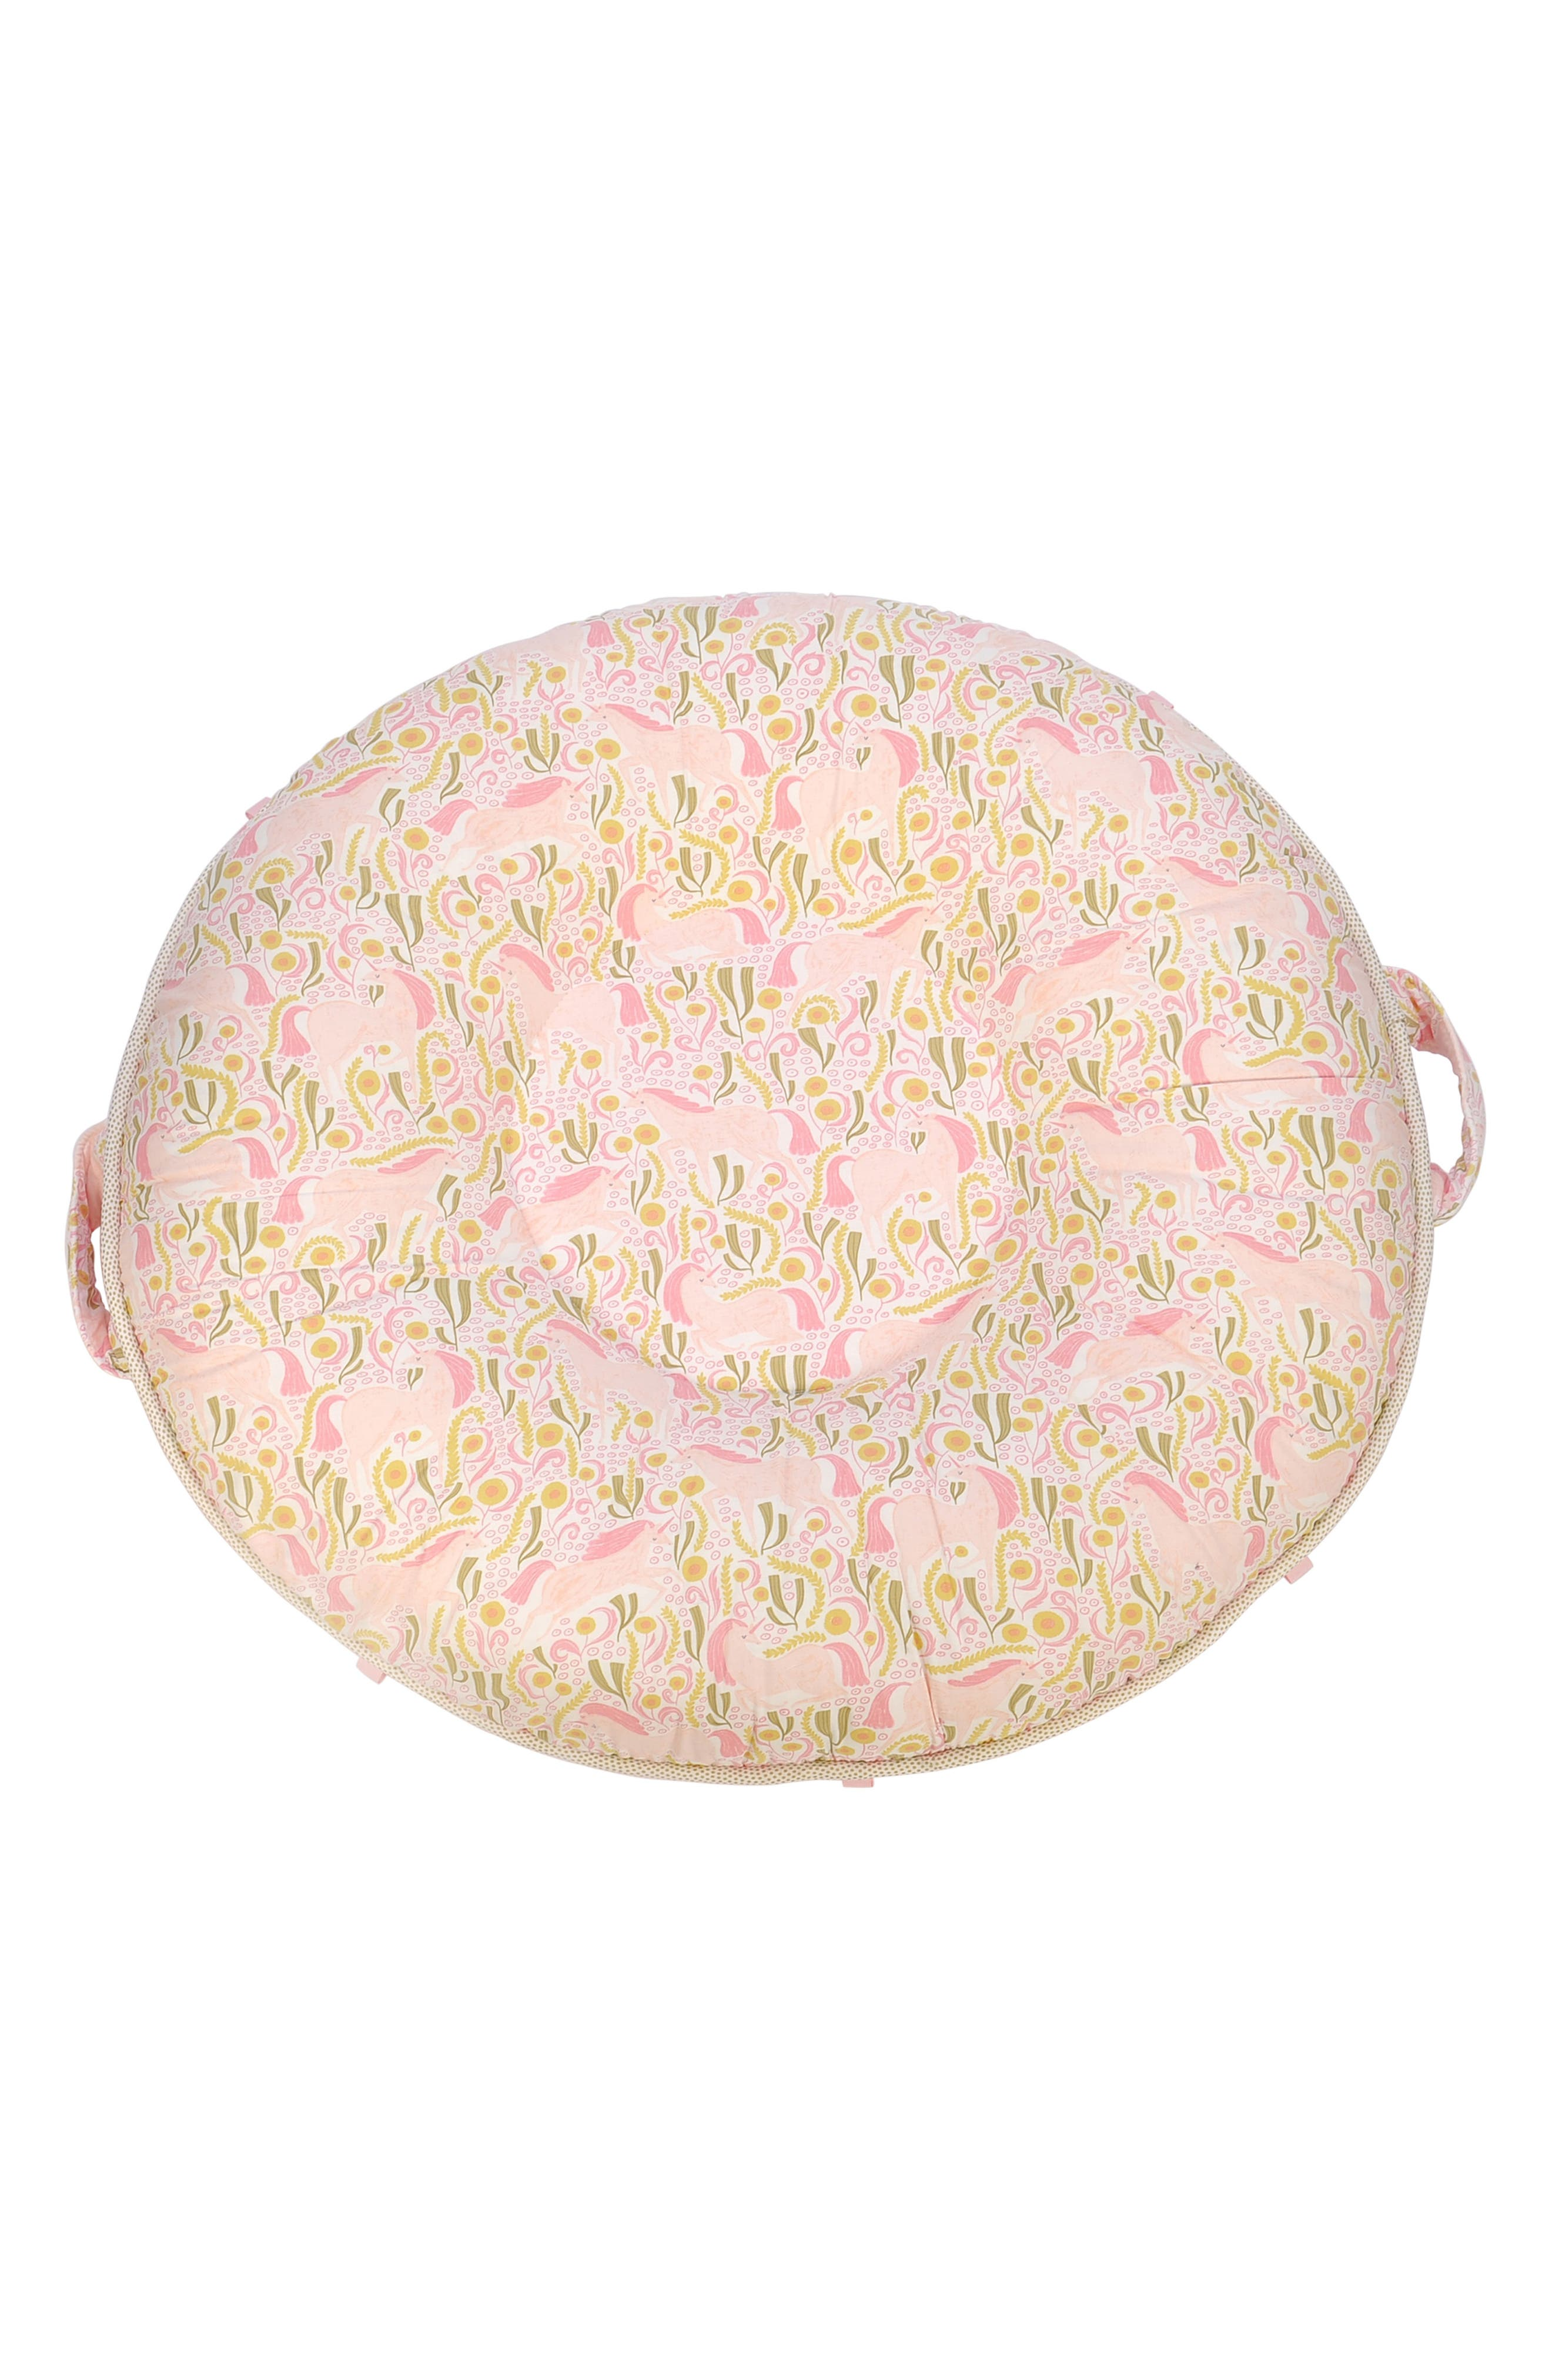 Isabel Luxe Portable Floor Pillow,                         Main,                         color, Light Pink